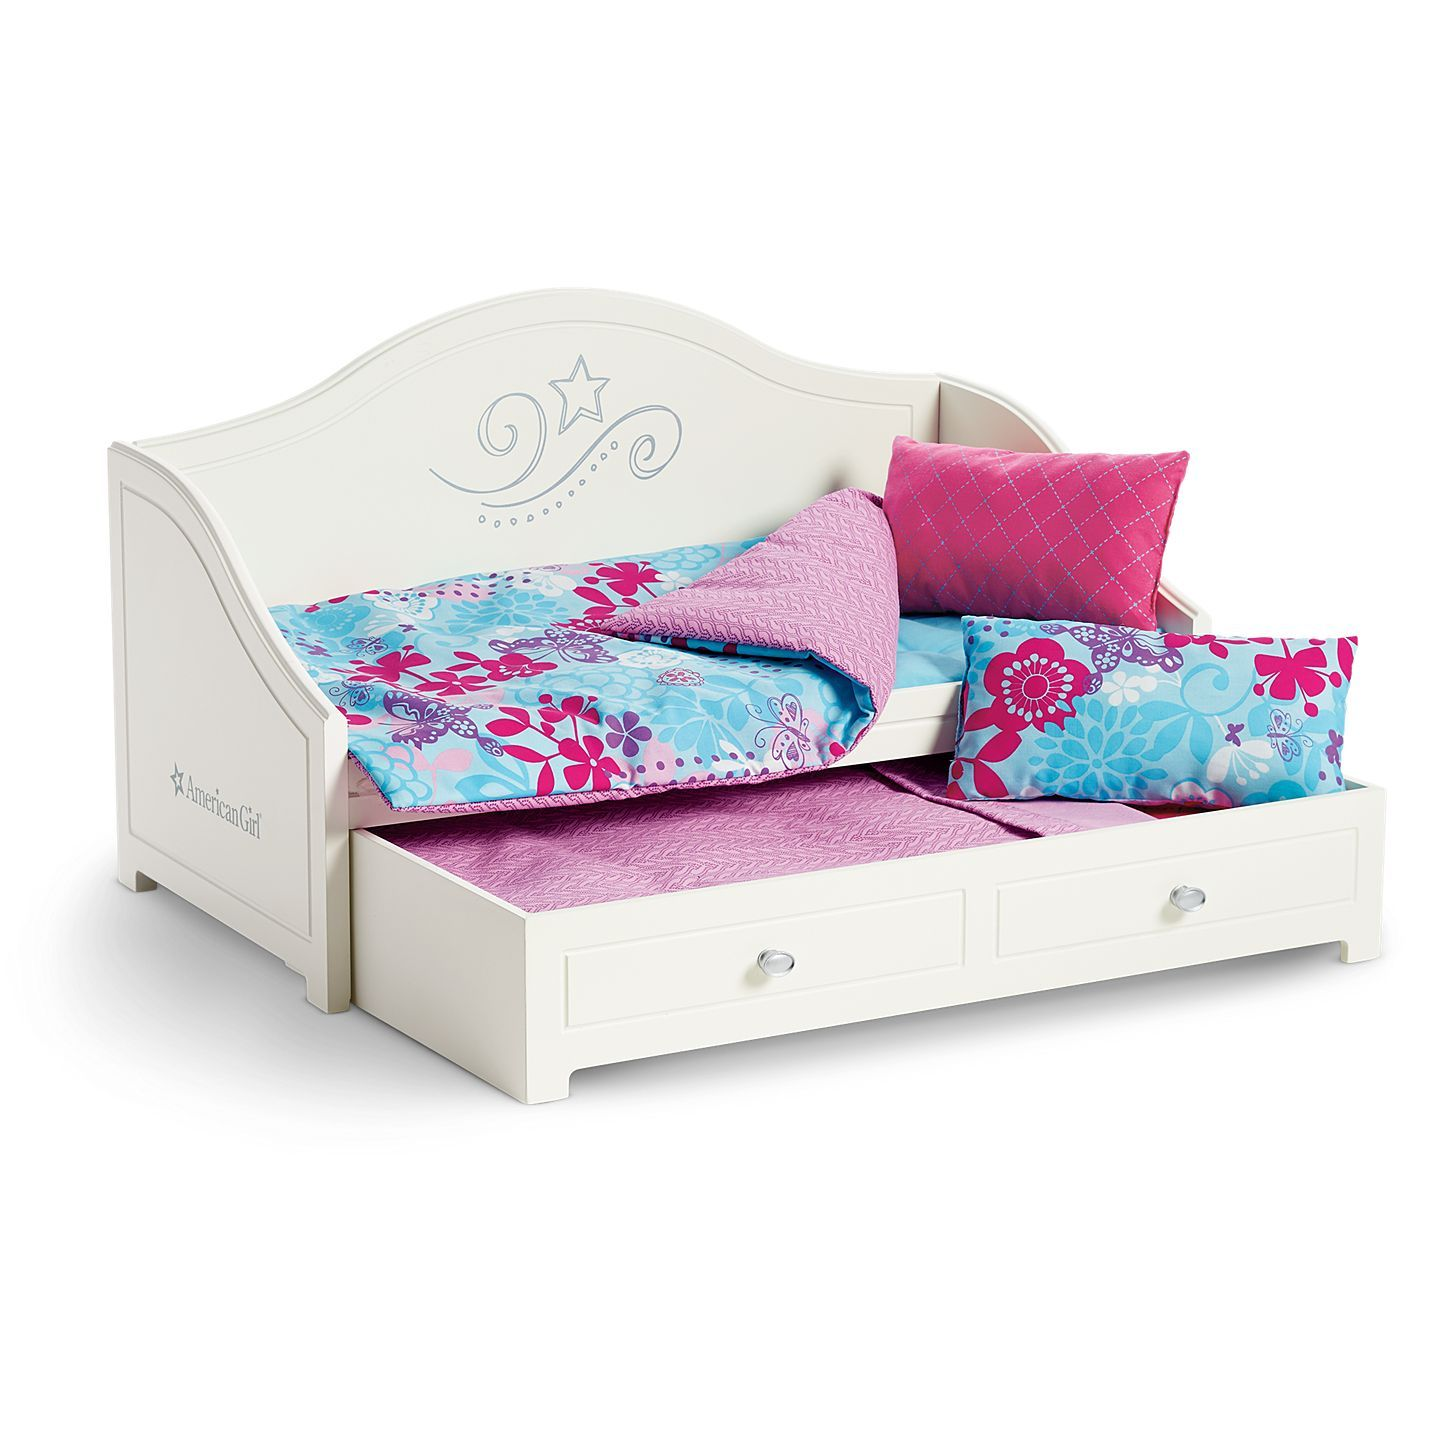 18-inch Doll FurnitureSTACKABLE White Trundle Bed with BeddingFits